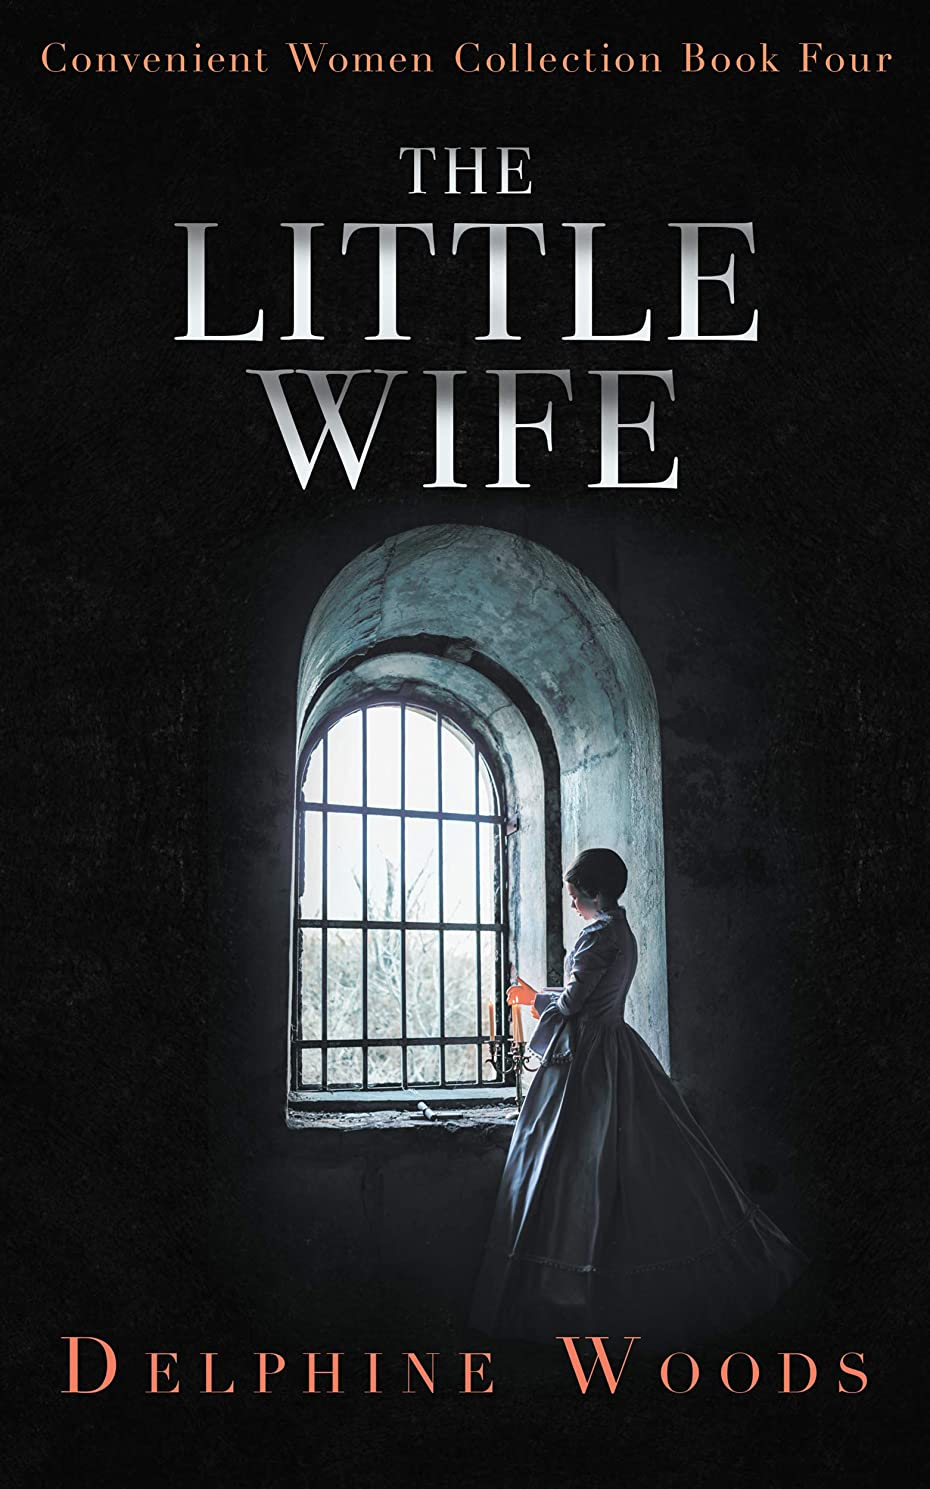 殺します食用オンスThe Little Wife: A Victorian Mystery-Thriller (Convenient Women Collection Book 4) (English Edition)